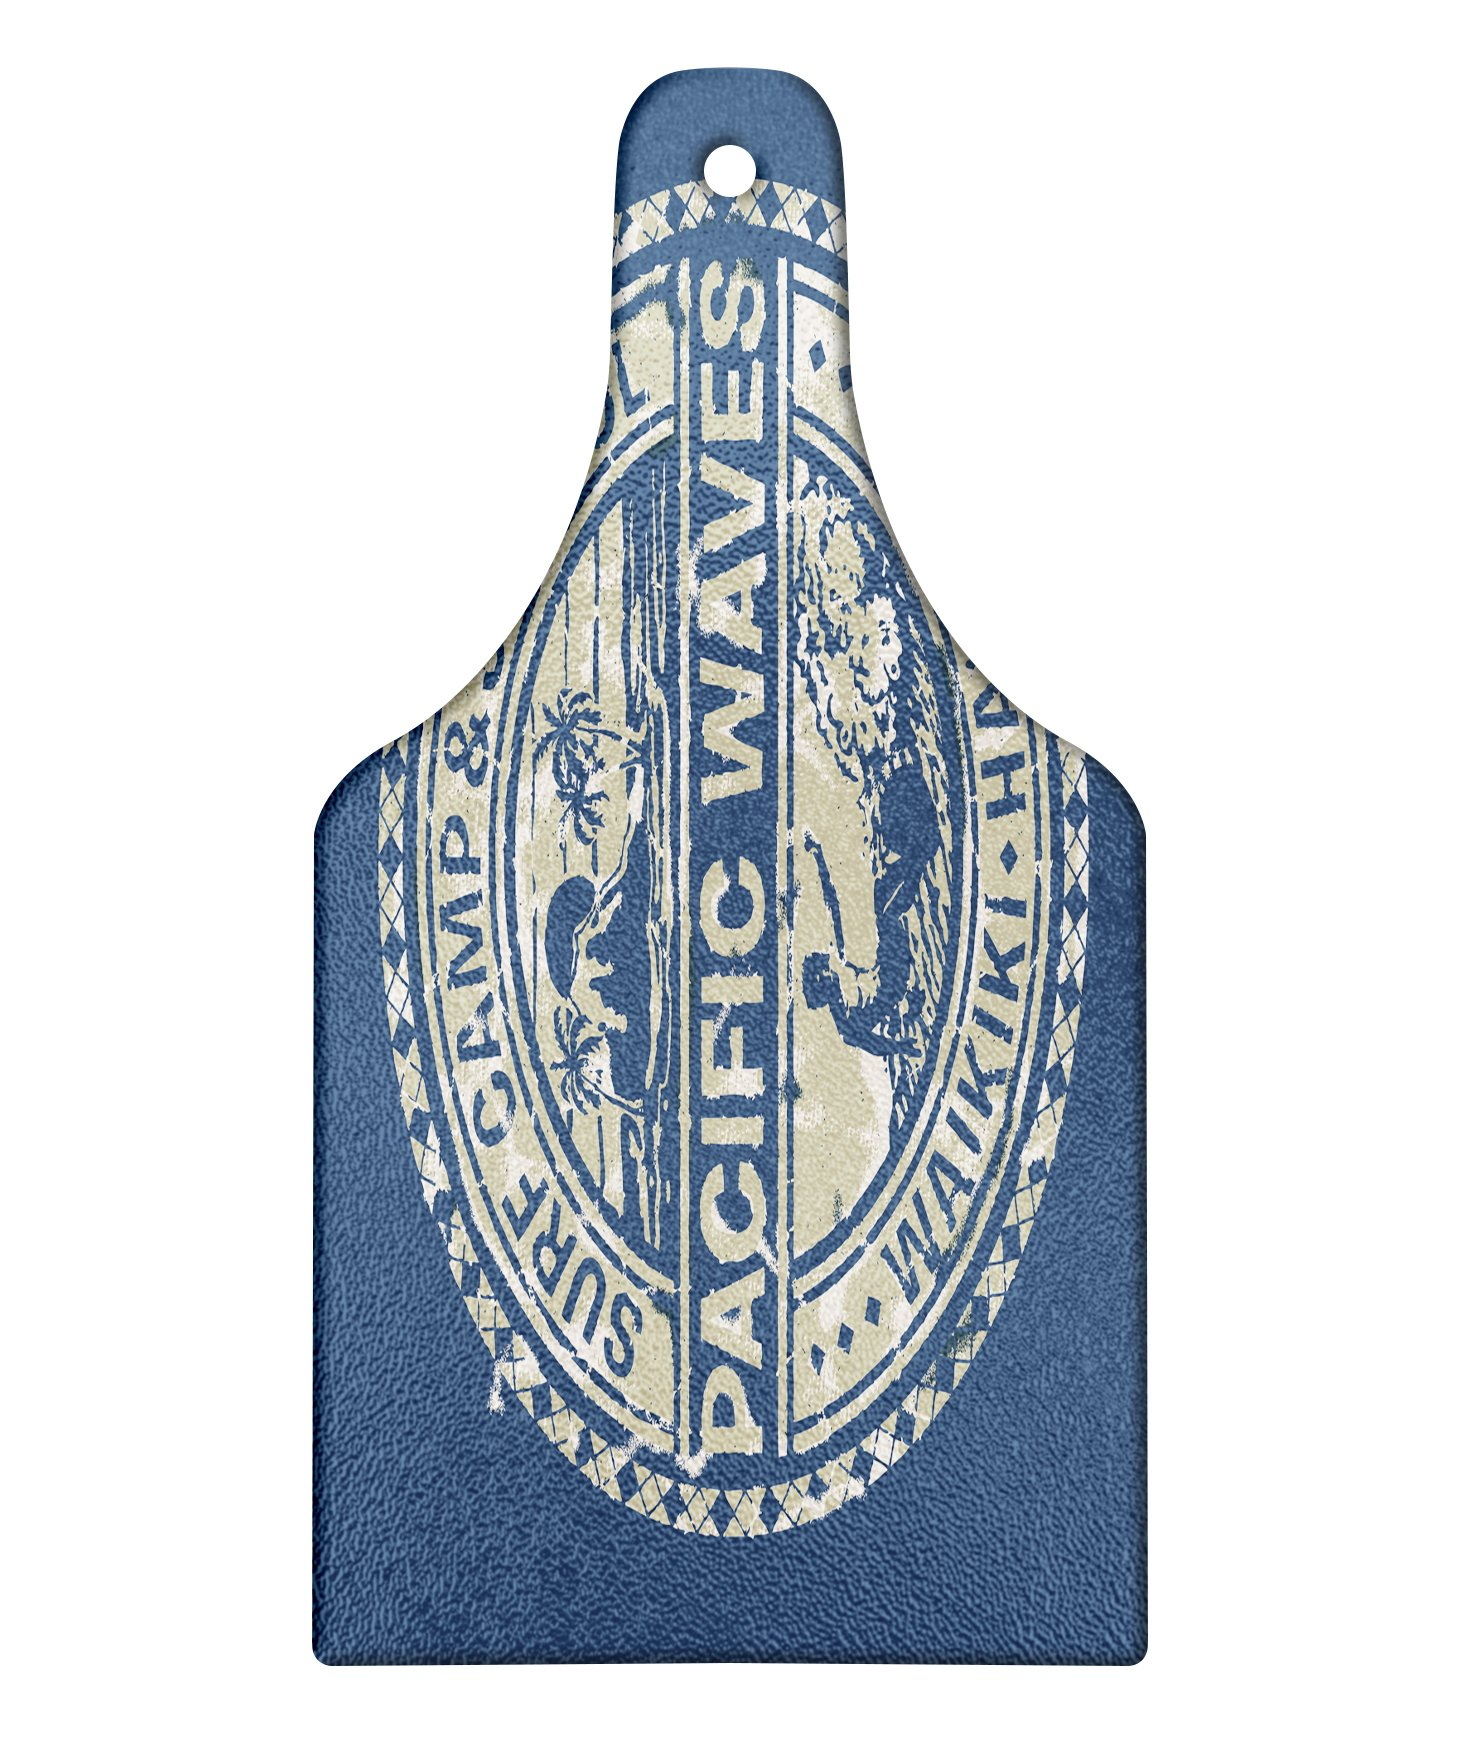 Ambesonne Modern Cutting Board, Pacific Waves Surf Camp and School Hawaii Logo Motif with Artsy Effects Design, Decorative Tempered Glass Cutting and Serving Board, Wine Bottle Shape, Khaki Slate Blue